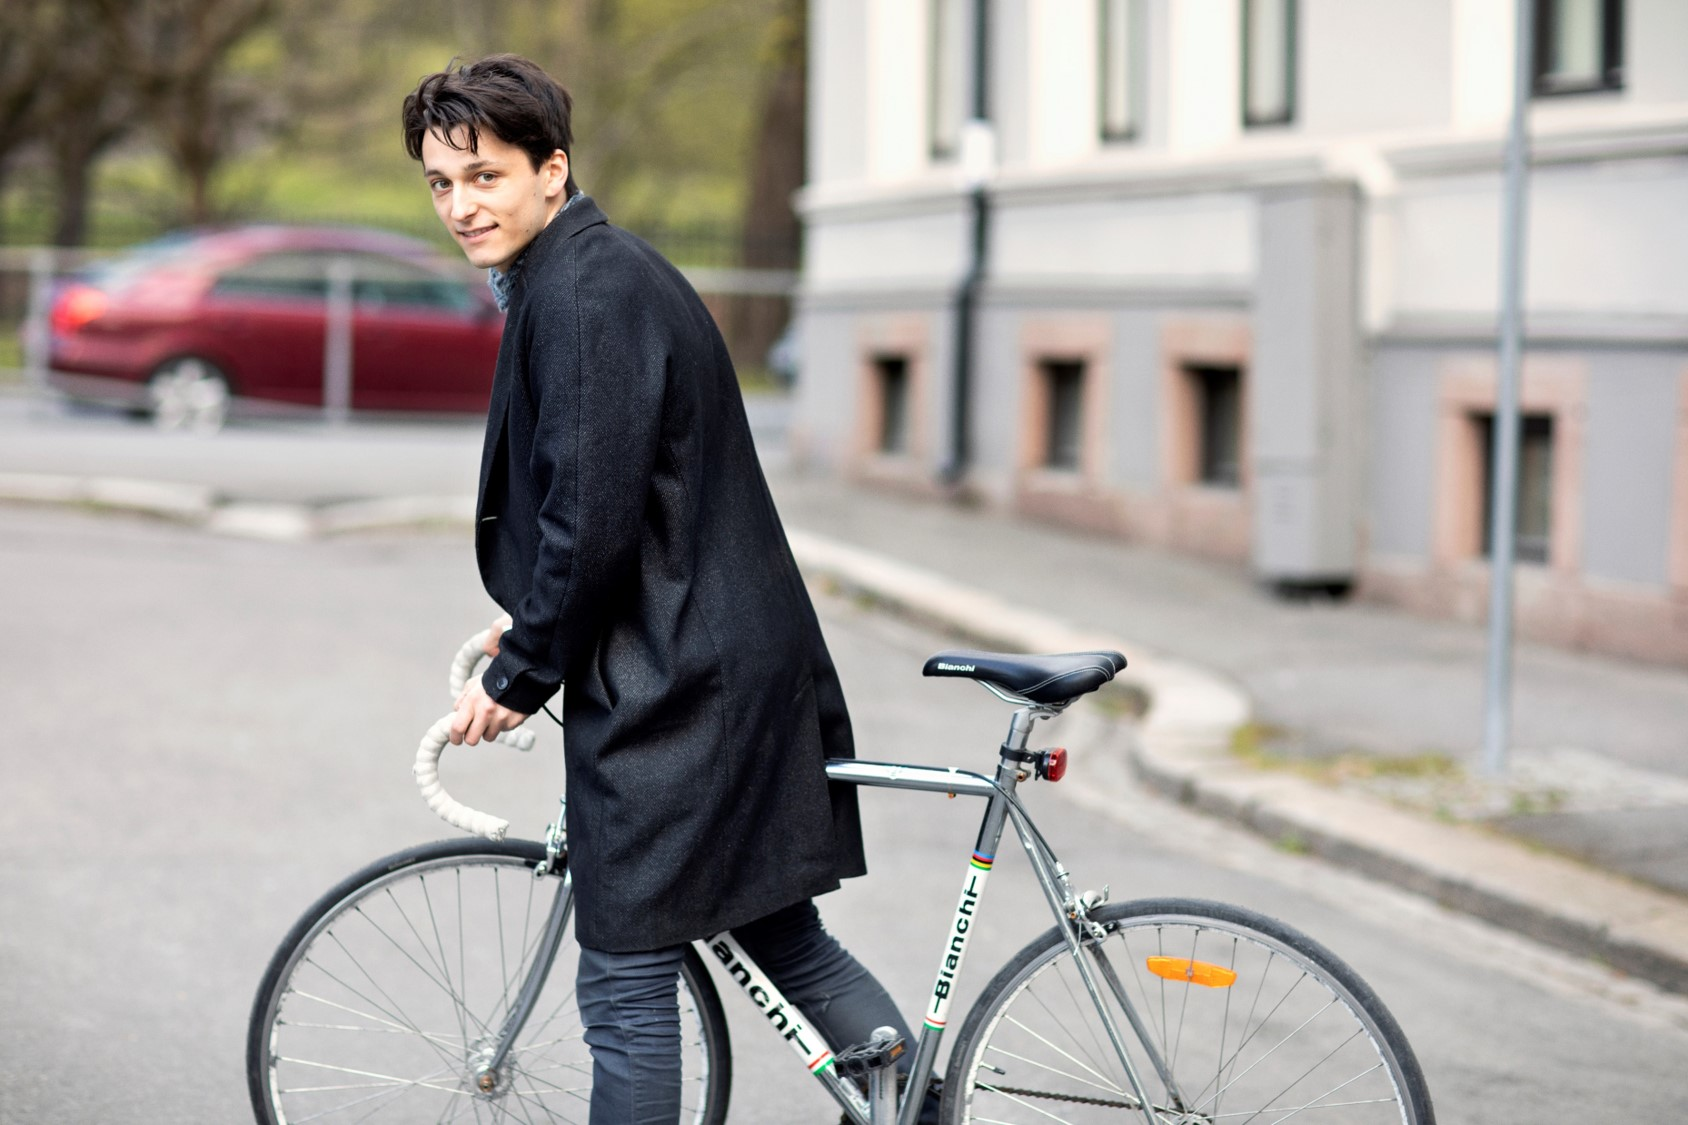 Male student on bicycle outdoors